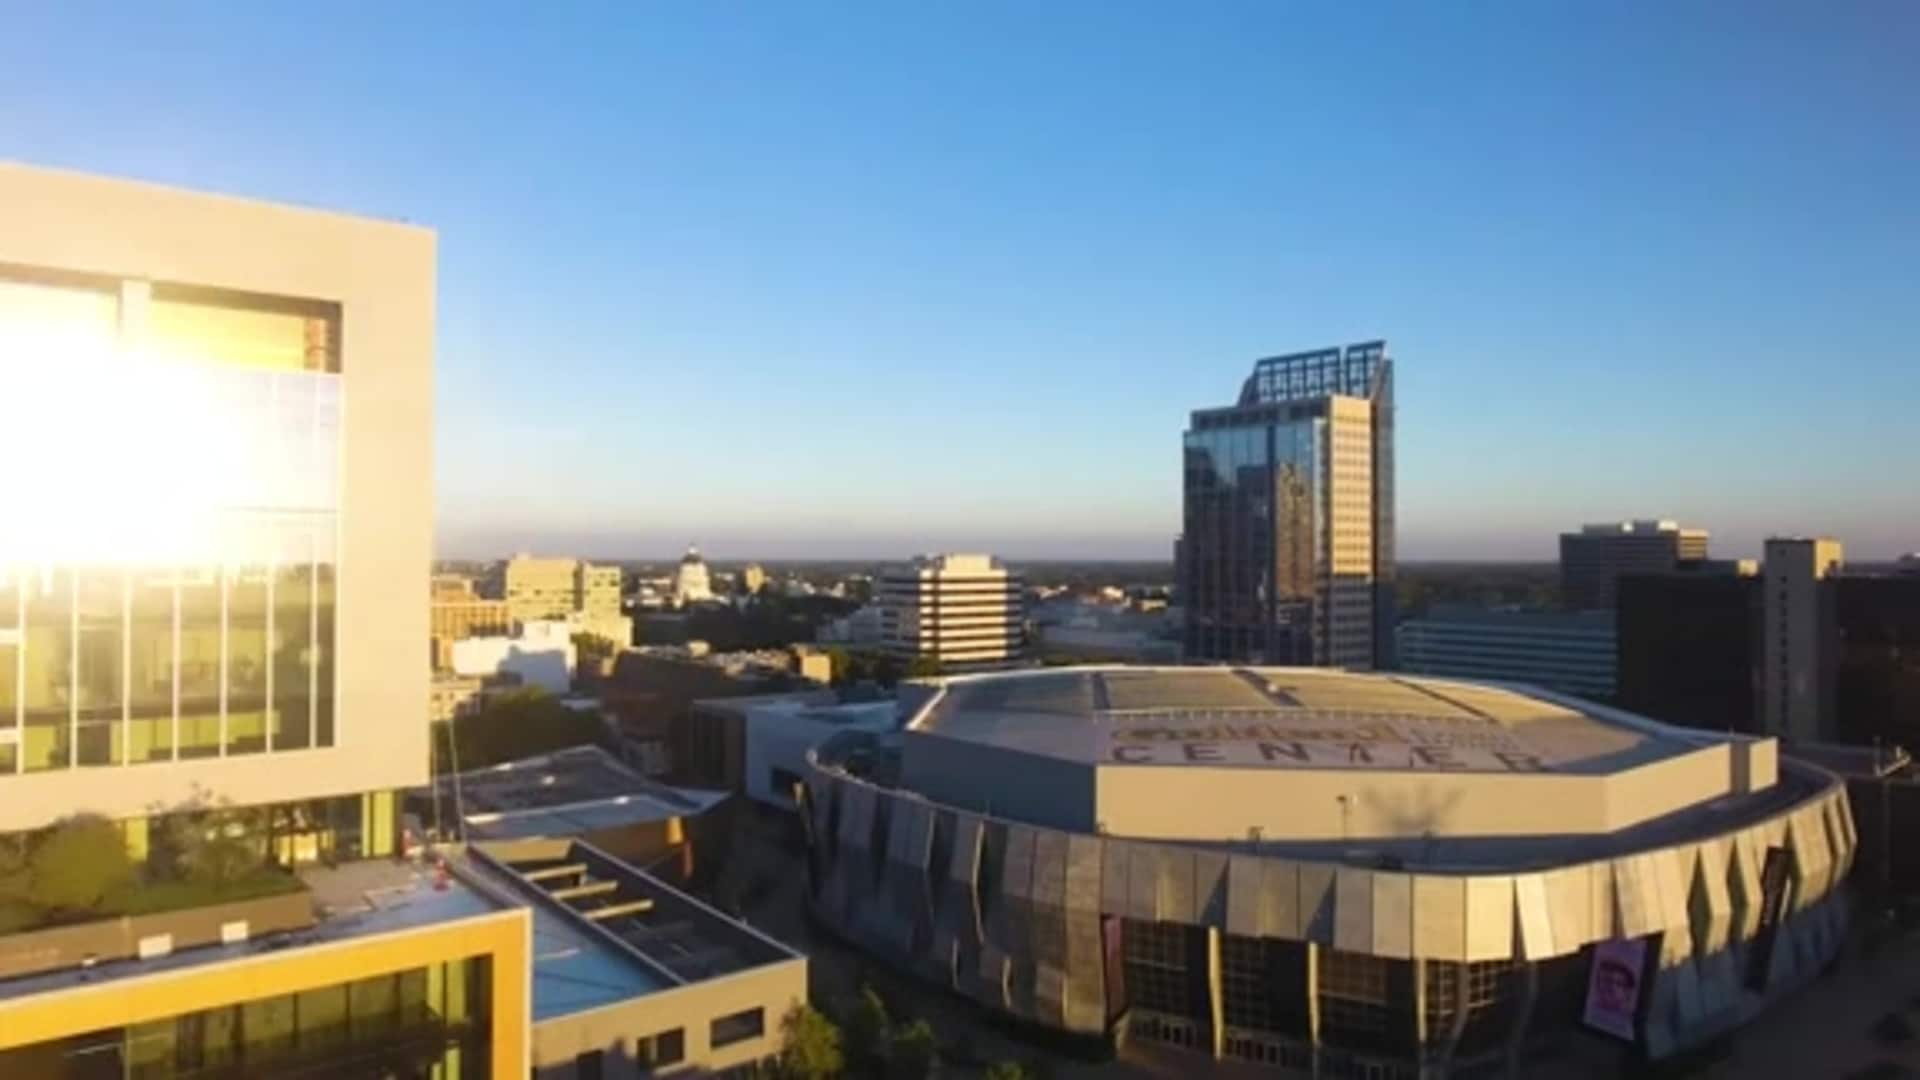 Vote at Golden 1 Center in November!